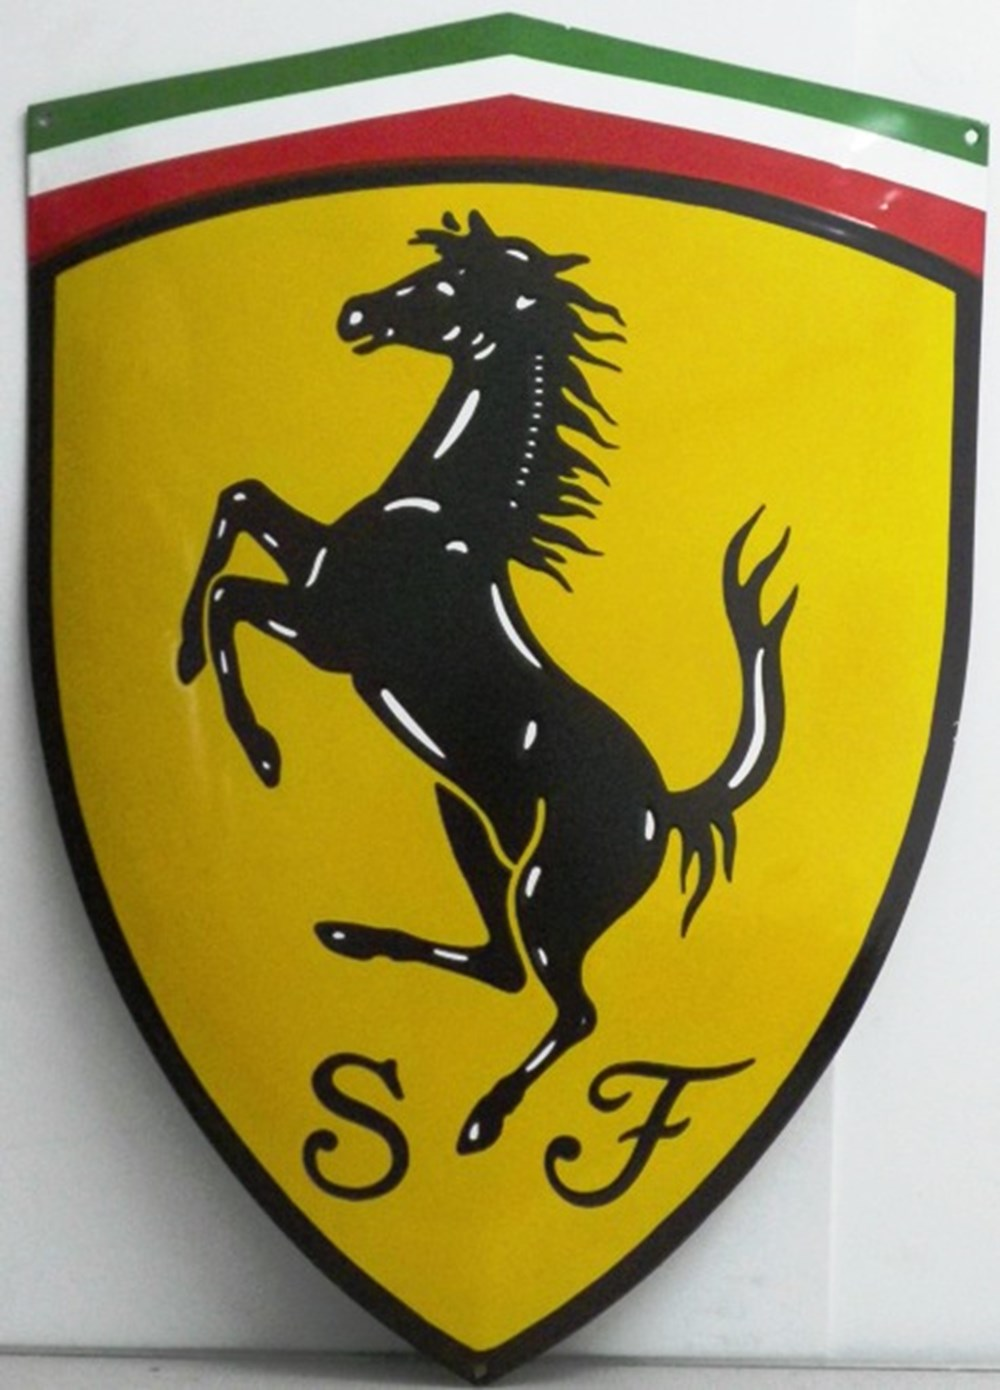 Lot 83 - Ferrari wall plaque.